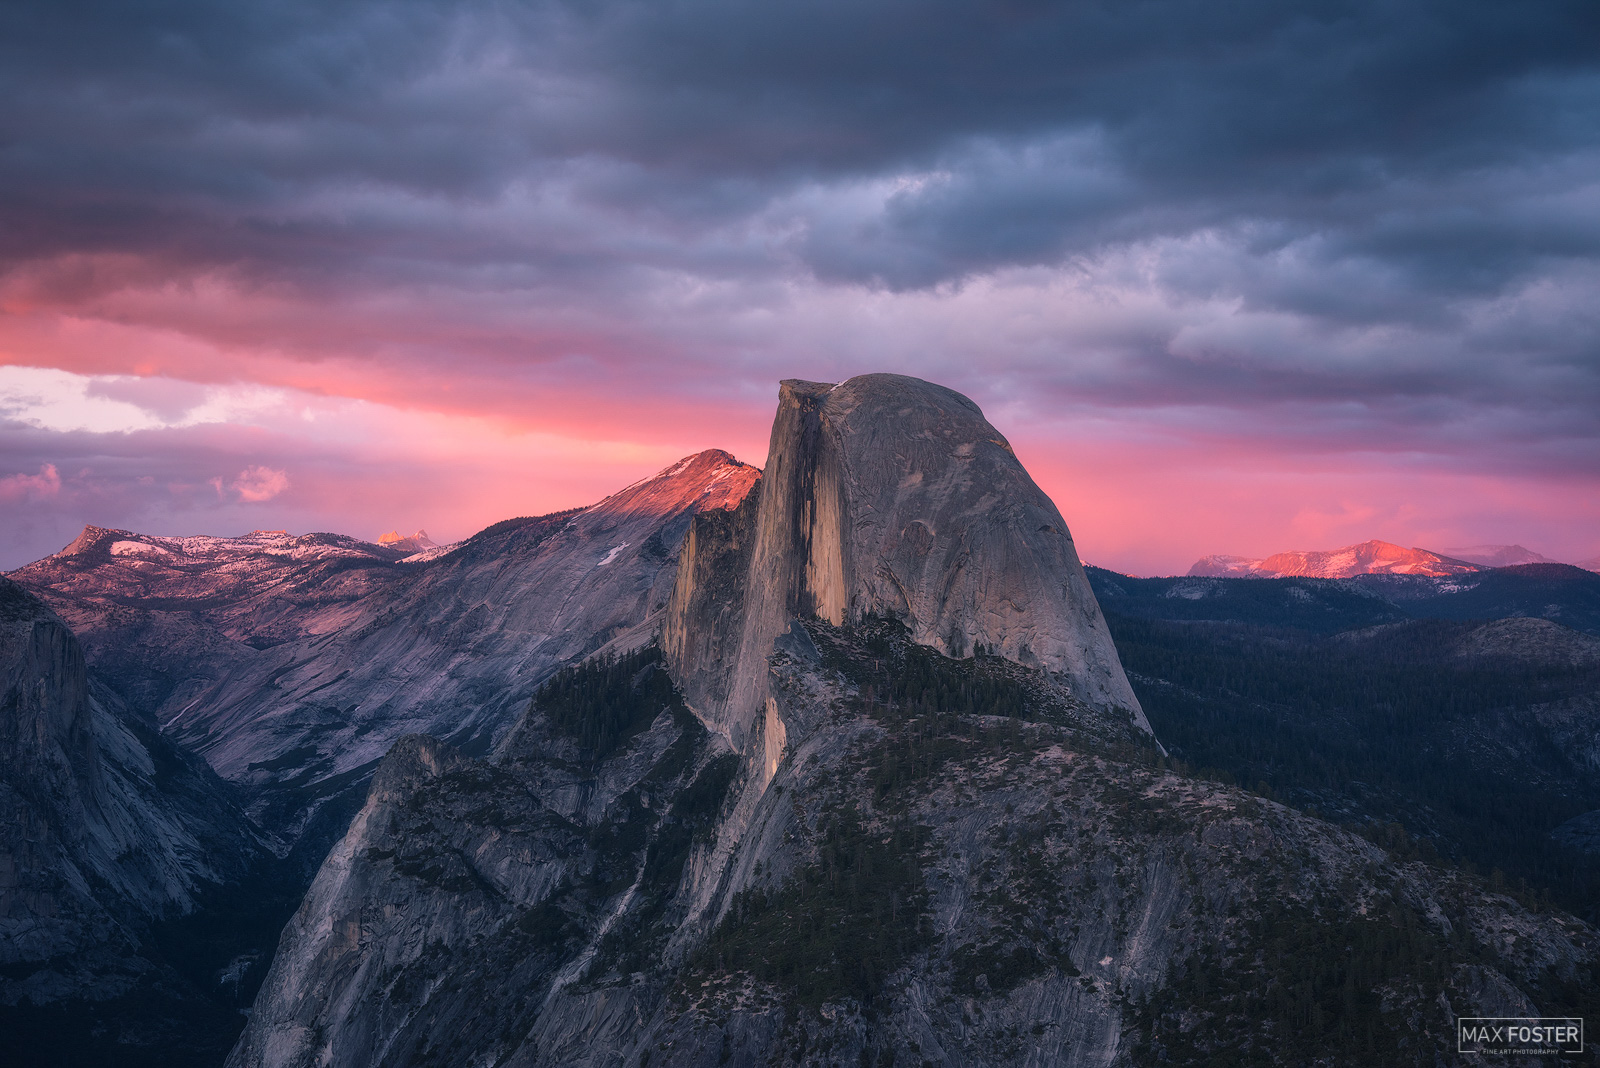 Yosemite National Park, California, Half Dome, Granite Dome, Yosemite Valley, Glacier Point, The Sentinel, photo